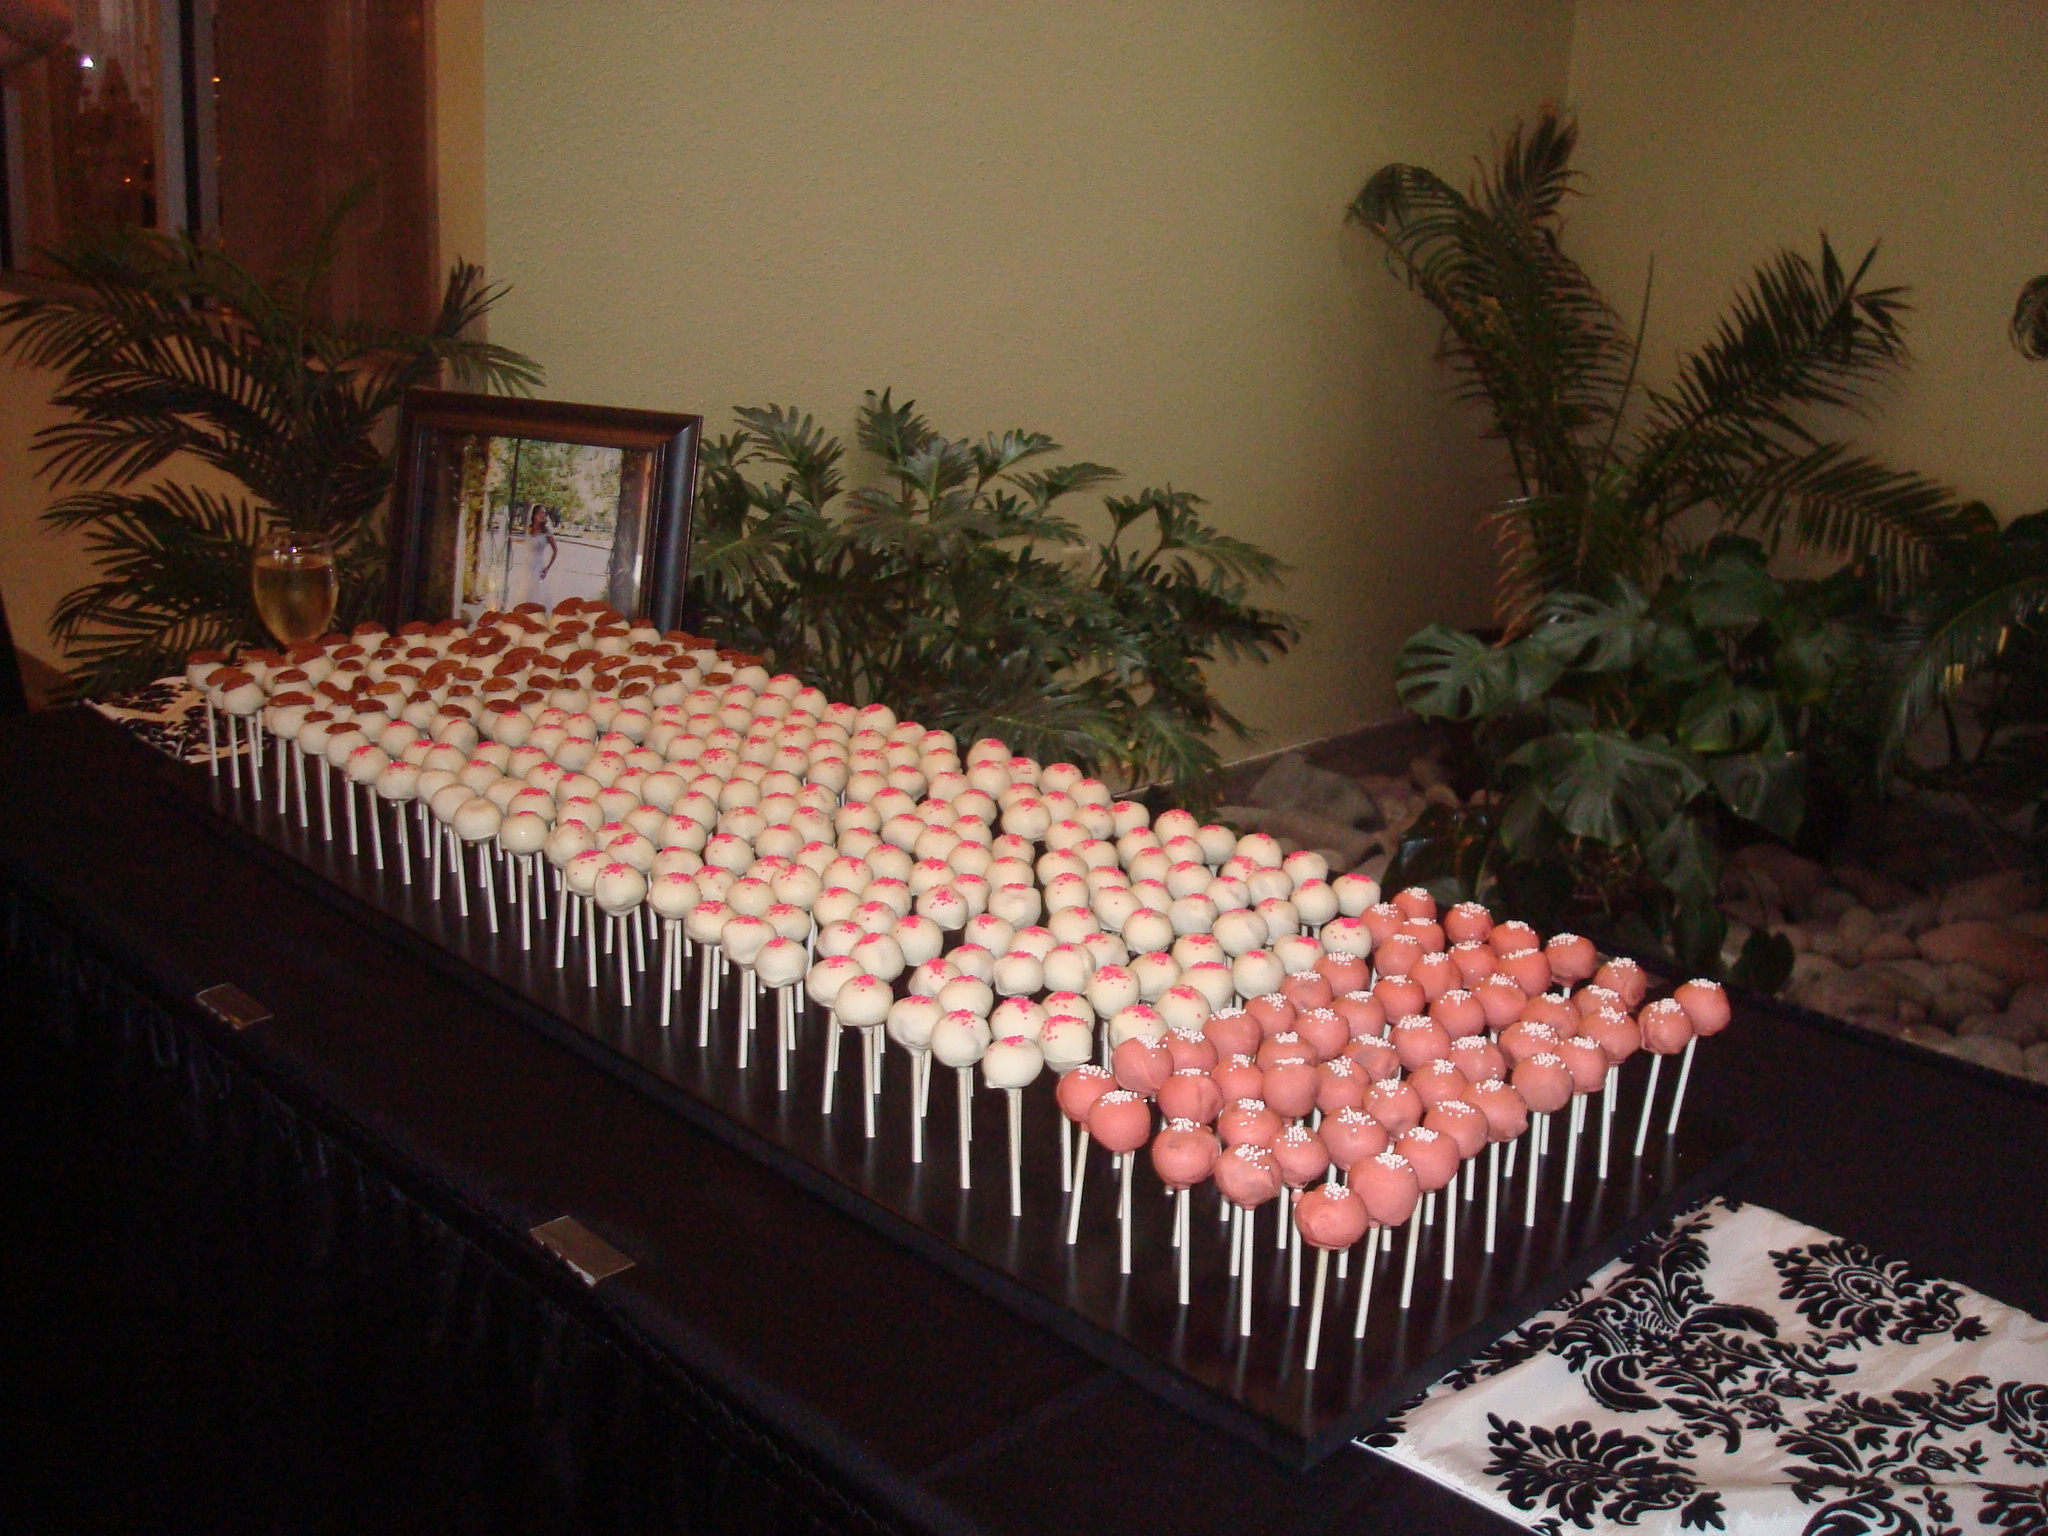 Reception, Flowers & Decor, Cakes, white, black, silver, cake, Lollipops